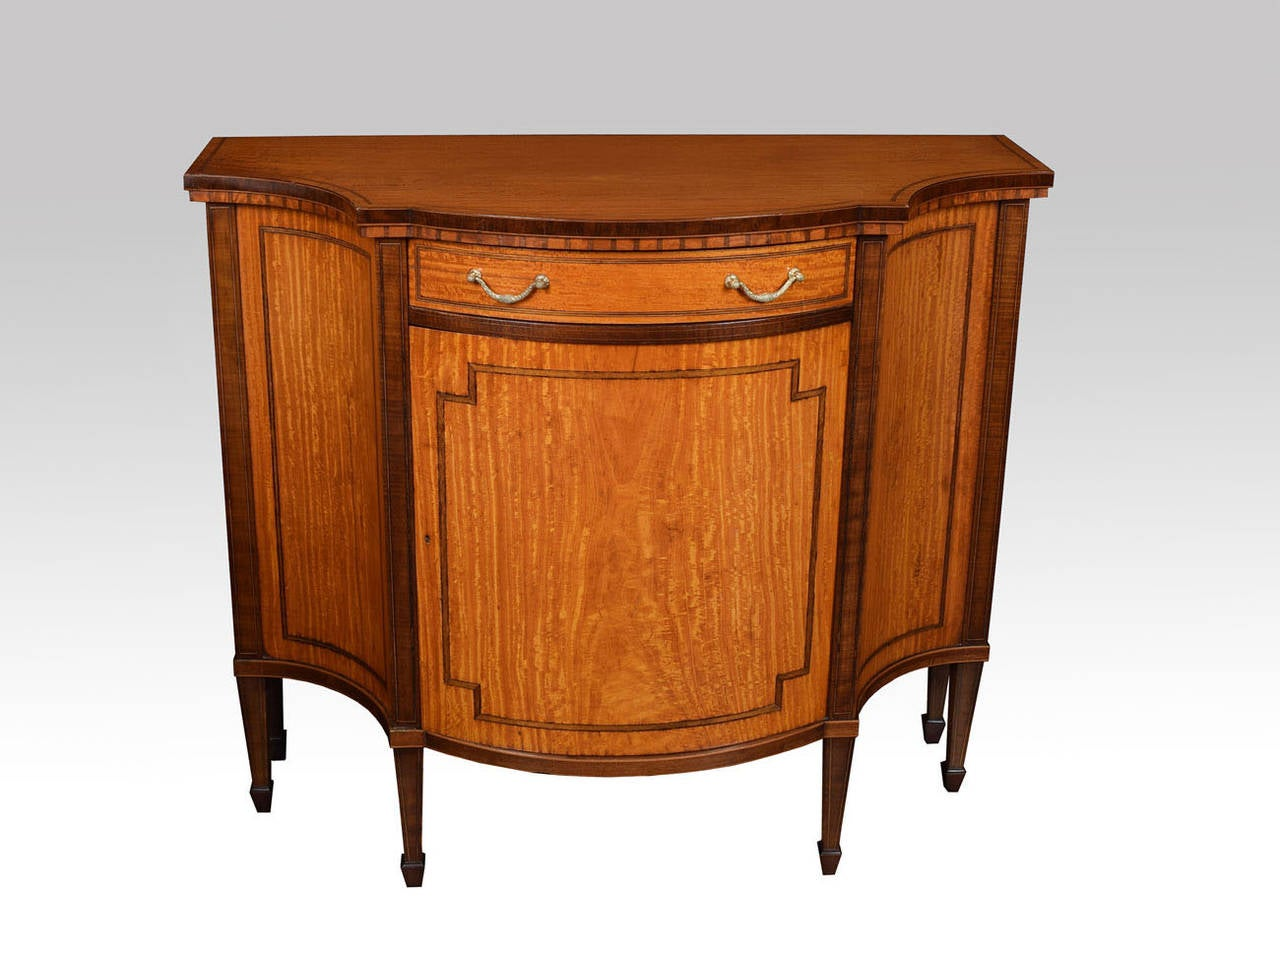 Sheraton Revival Inlaid Serpentine Fronted Cabinet 3